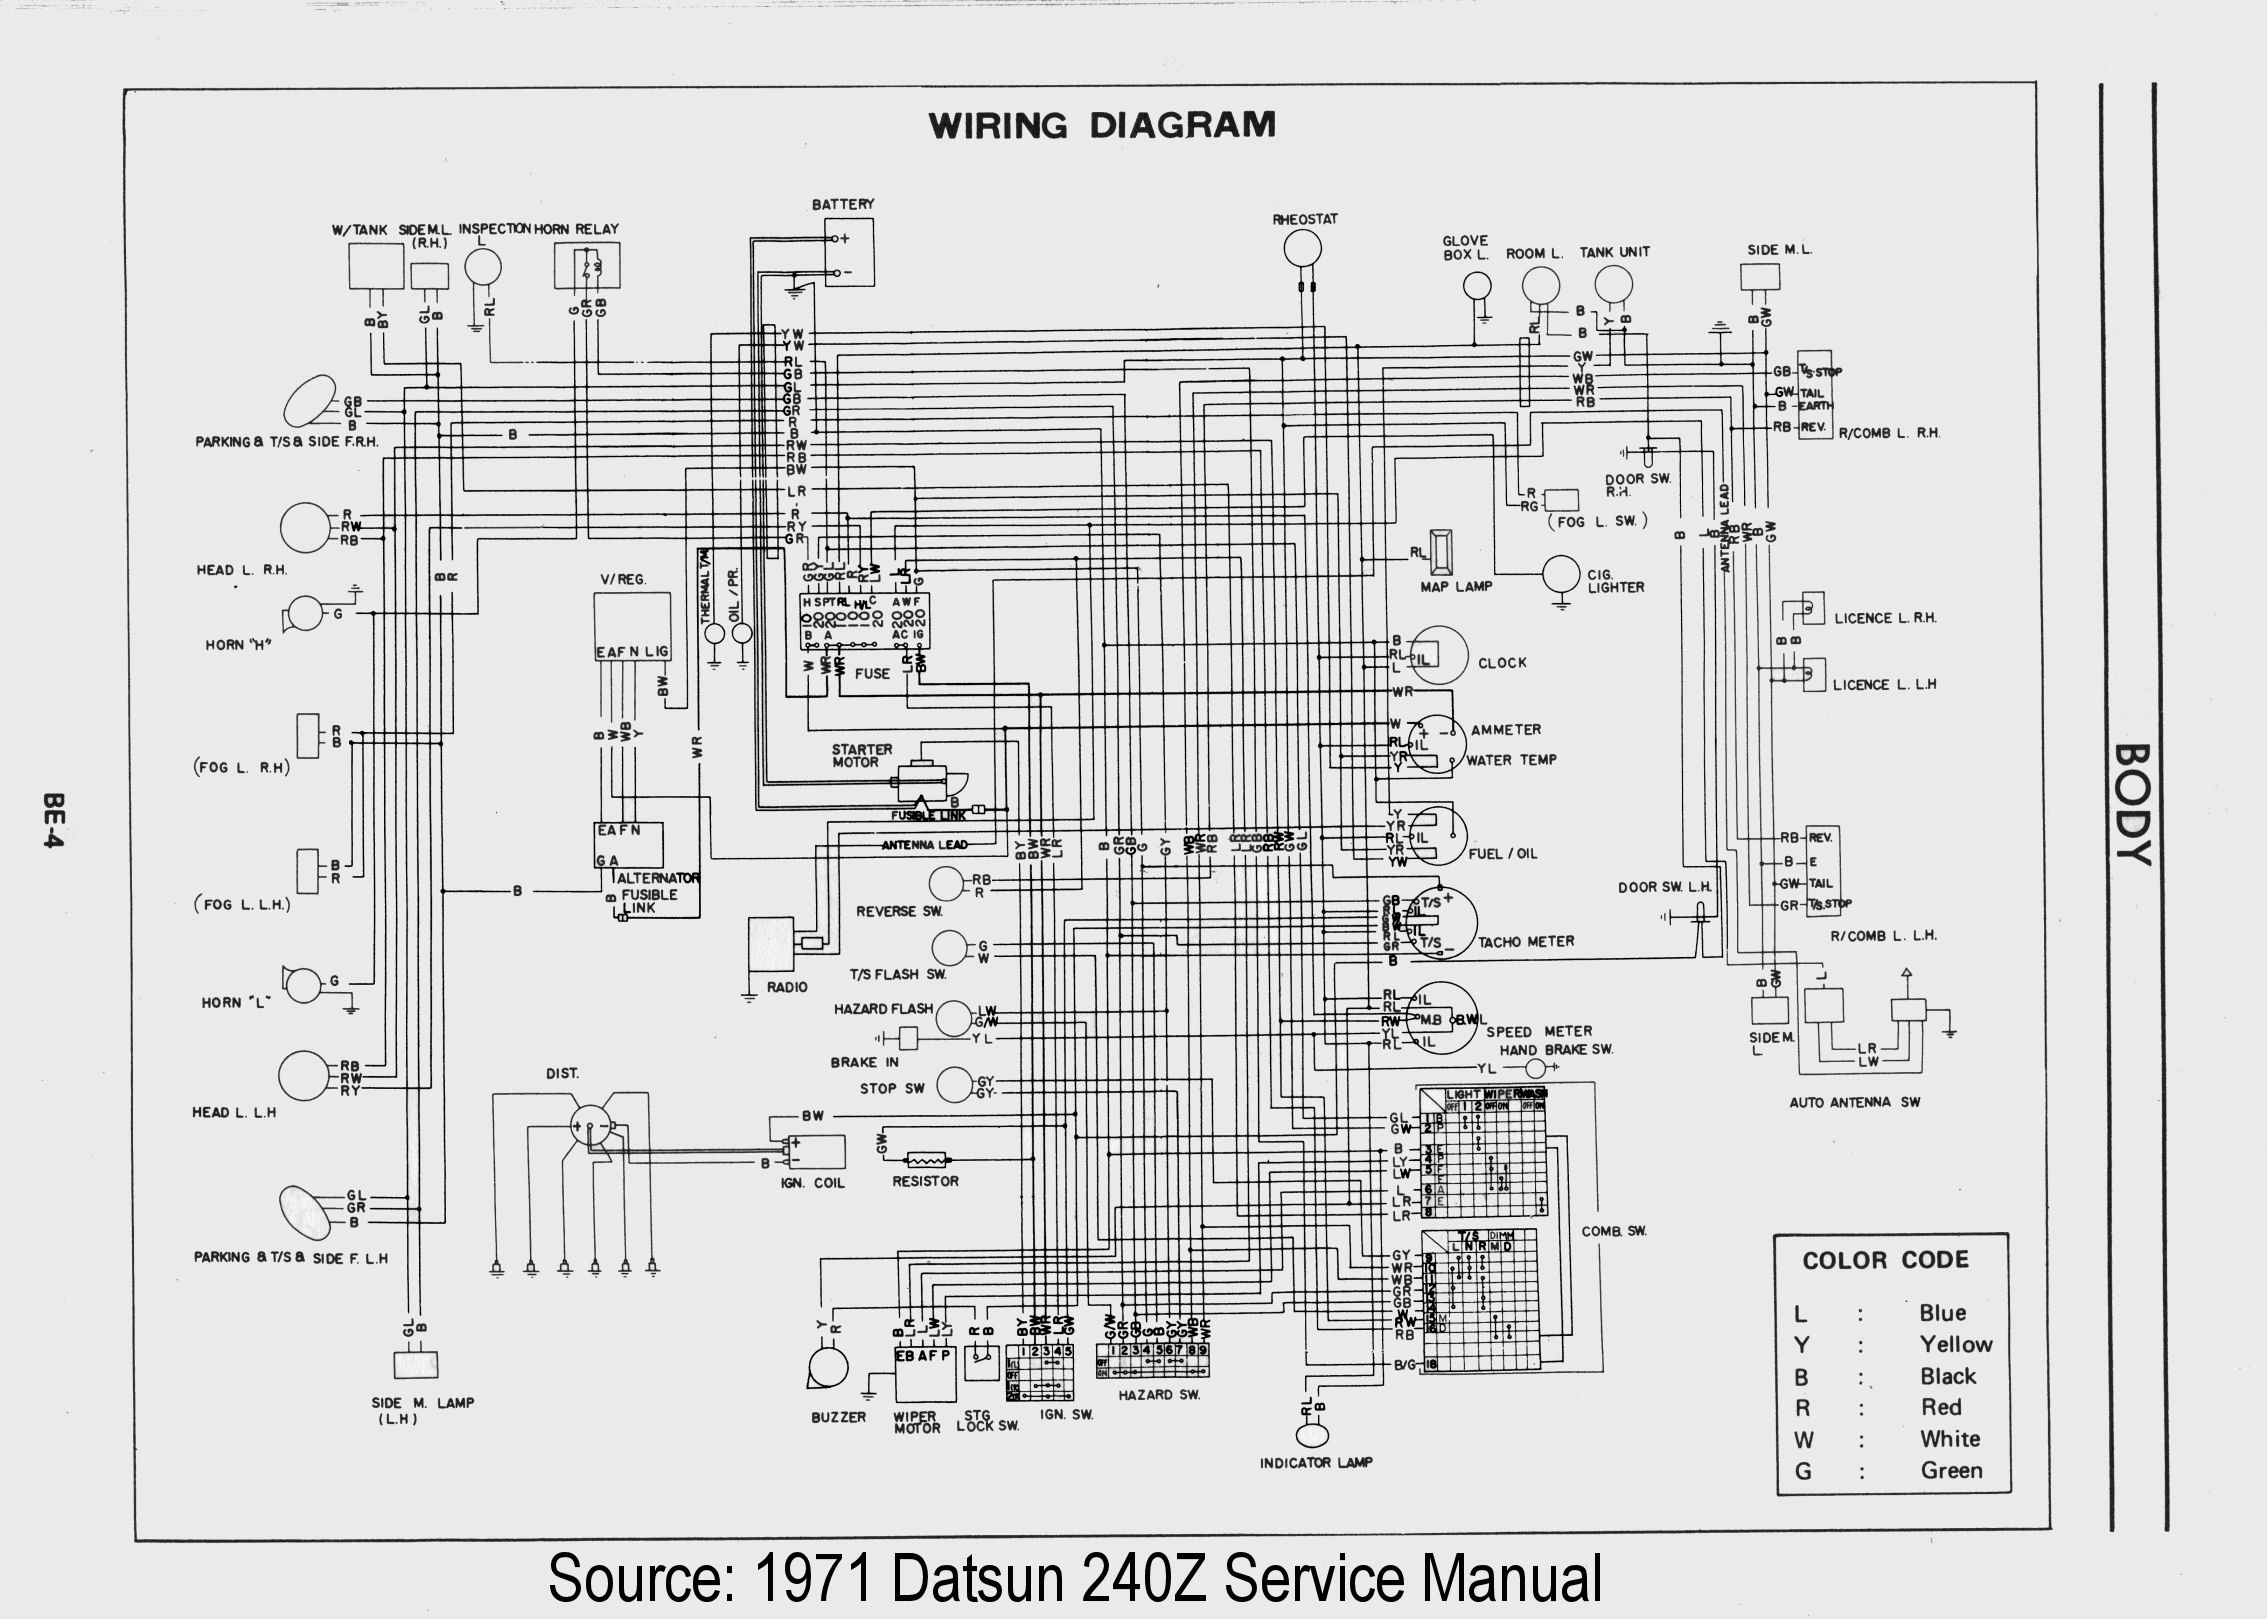 Wiring Diagram HiRes 2 280z wiring diagram 1978 datsun pickup wiring diagram \u2022 wiring nissan 350z wiring diagram at bayanpartner.co